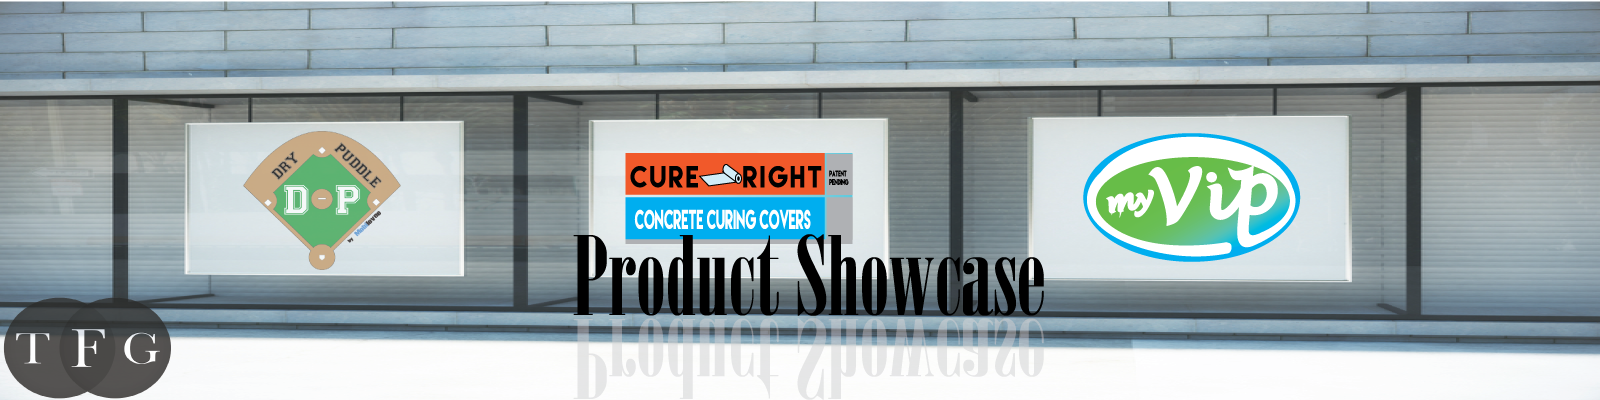 Product-Showcase-Banner